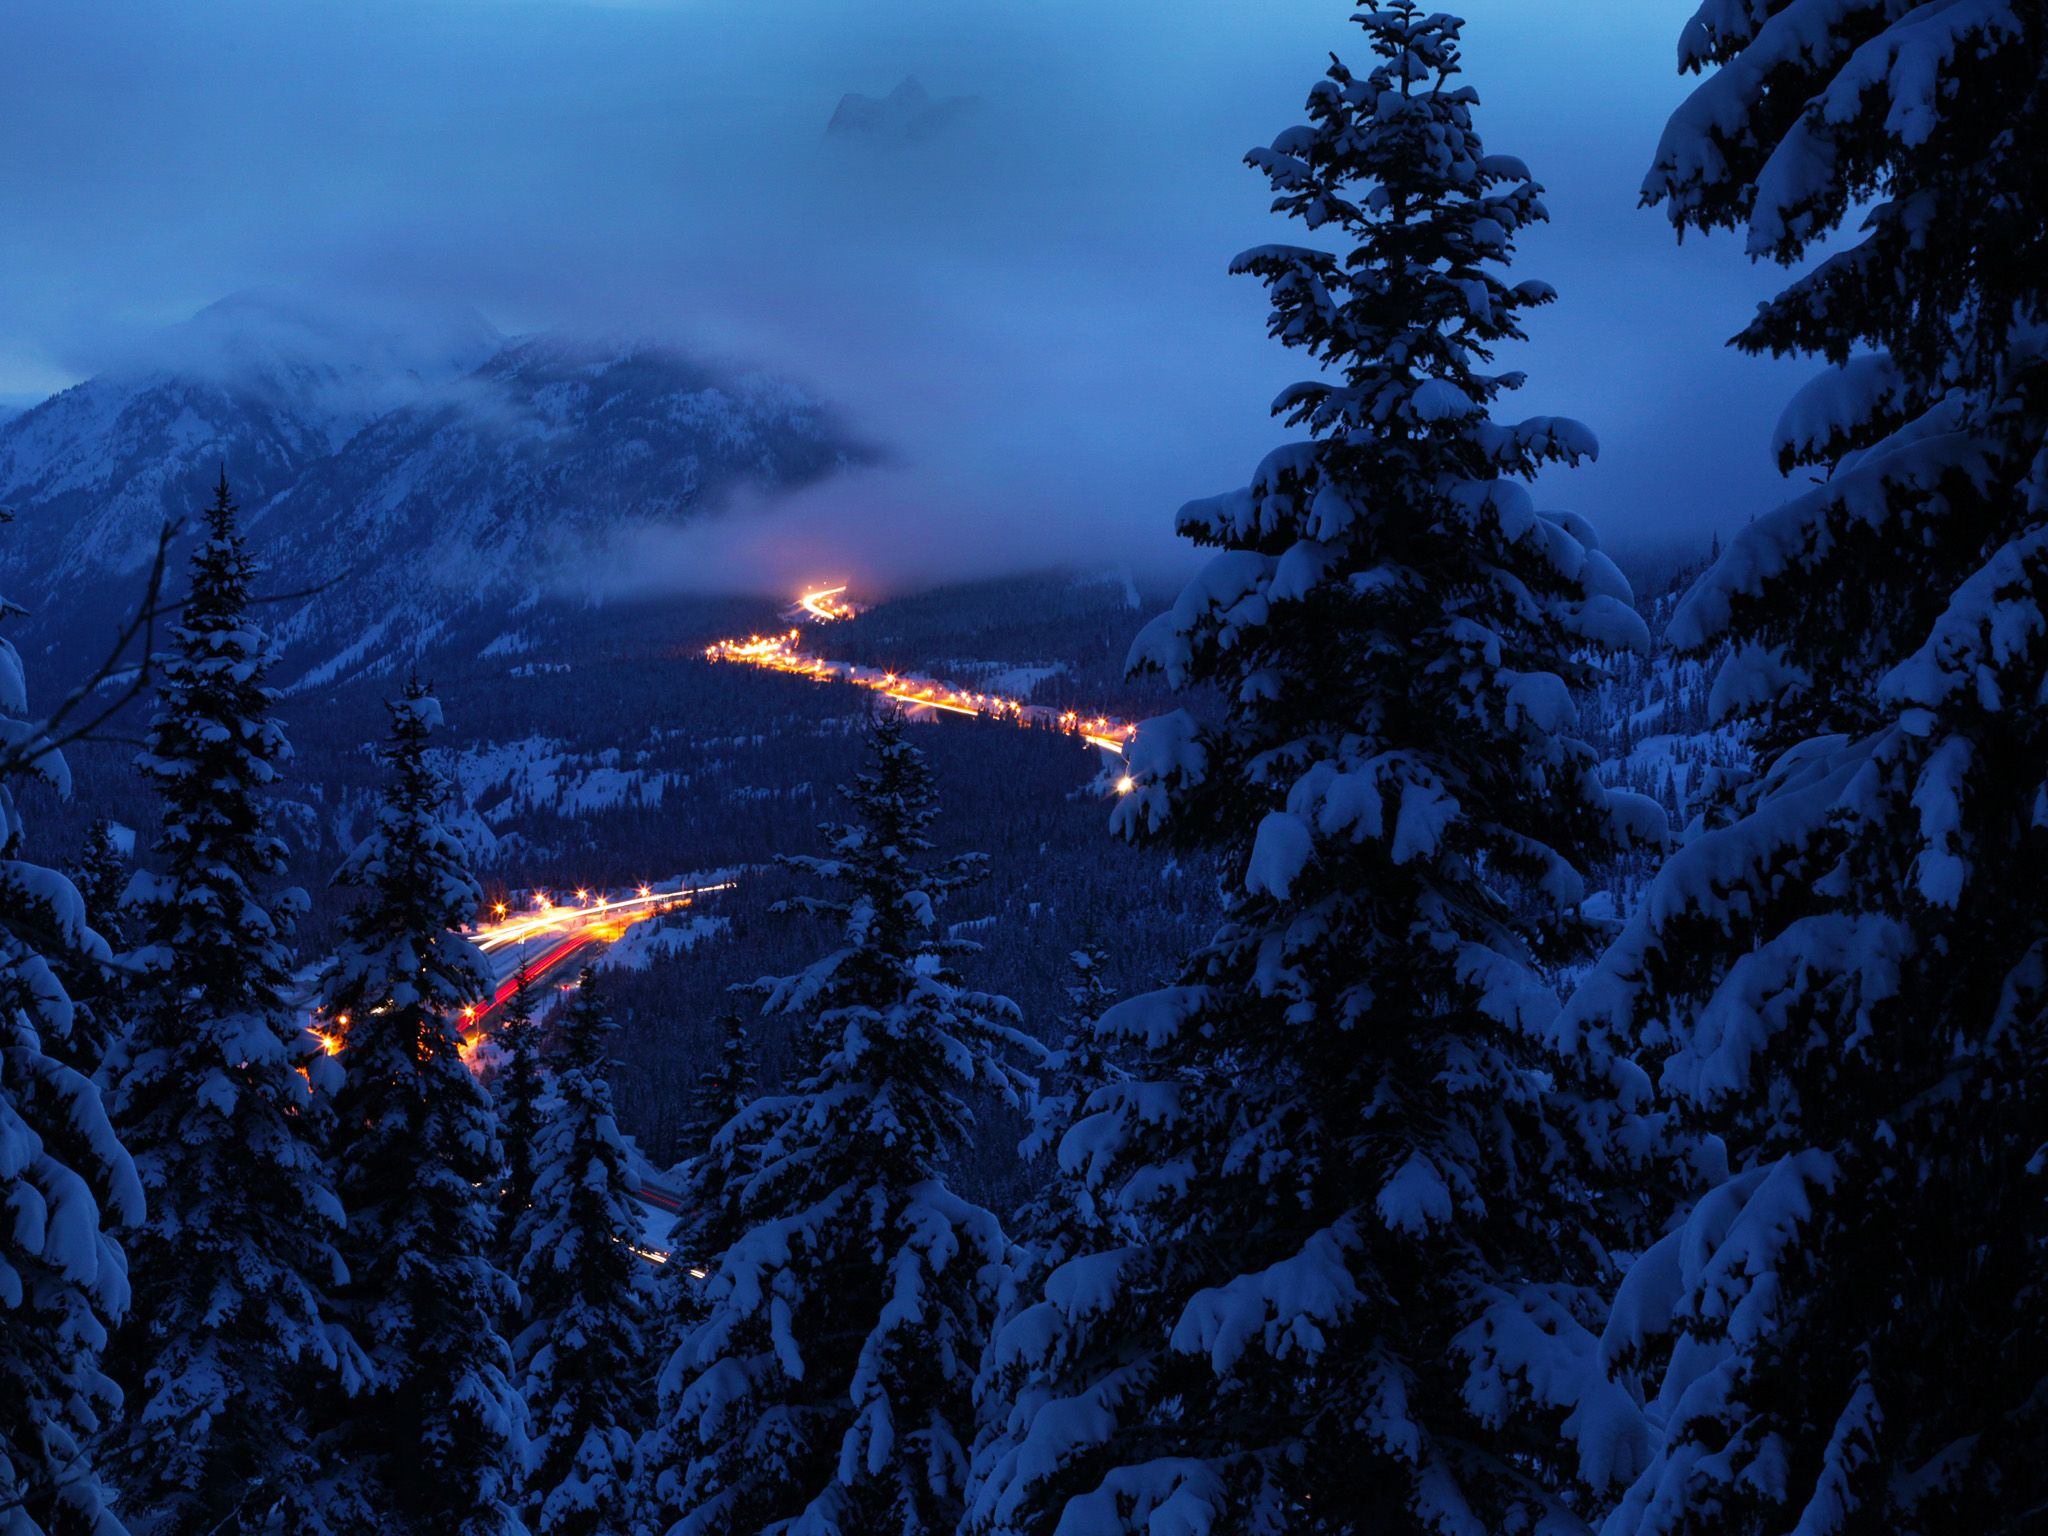 Snow-filled mountain, trees, and highway from lookout point. This image is from Highway Thru Hell. [Фото дня - Октябрь 2014]